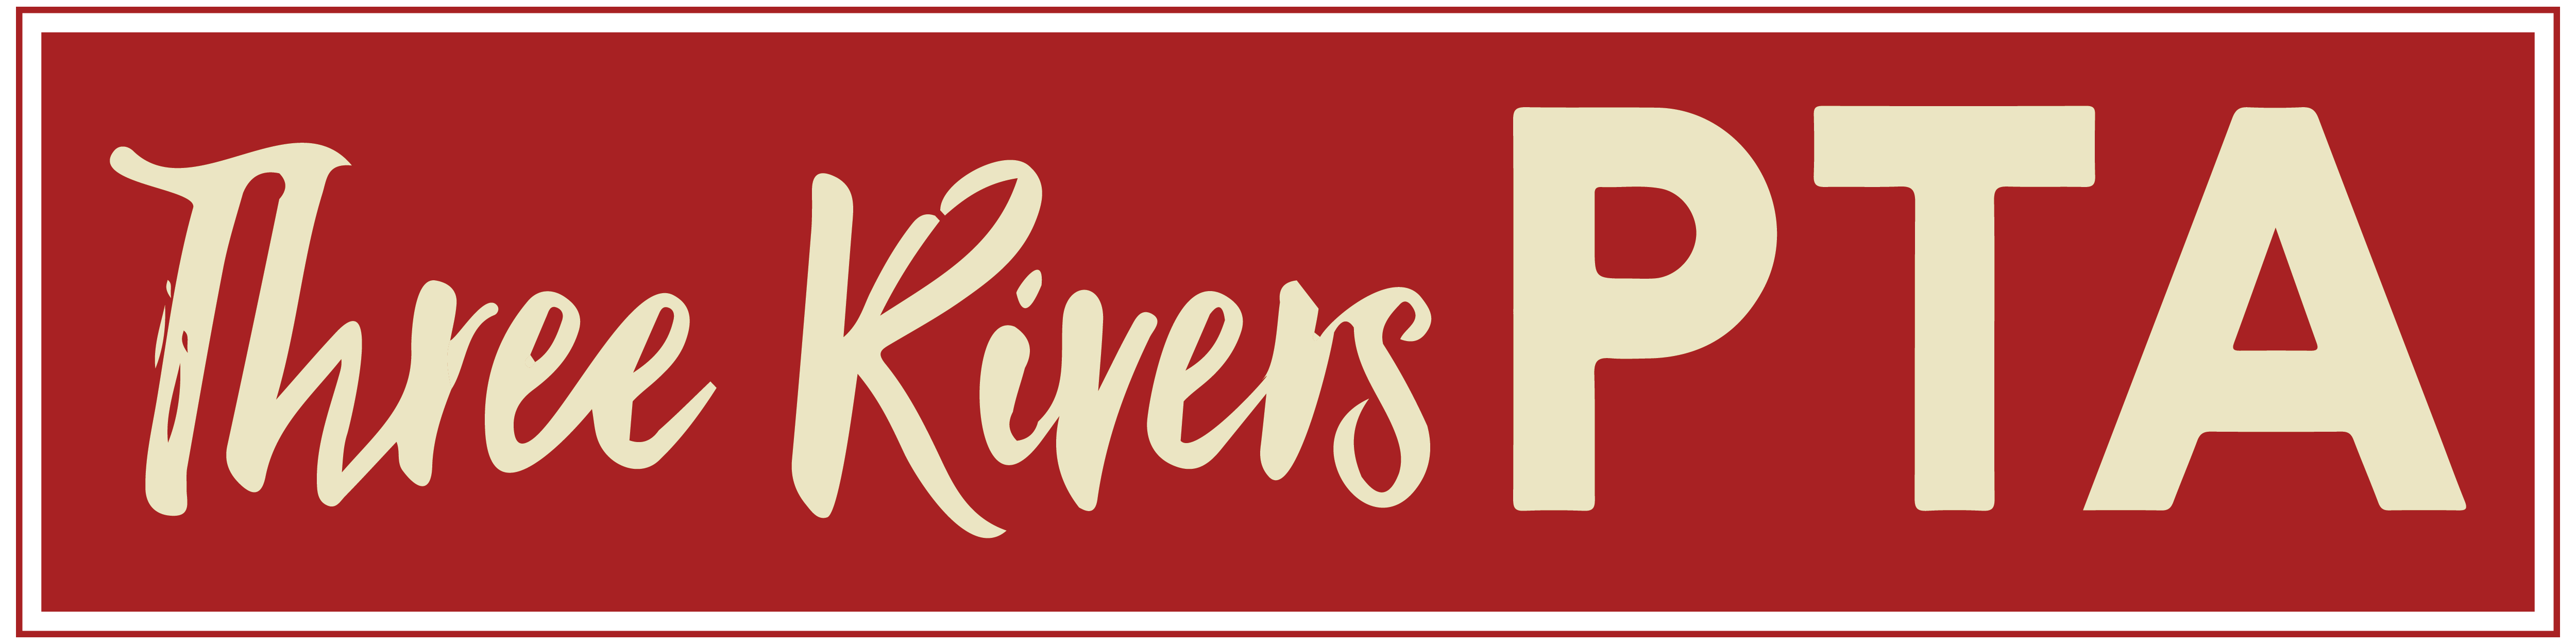 Three Rivers PTA